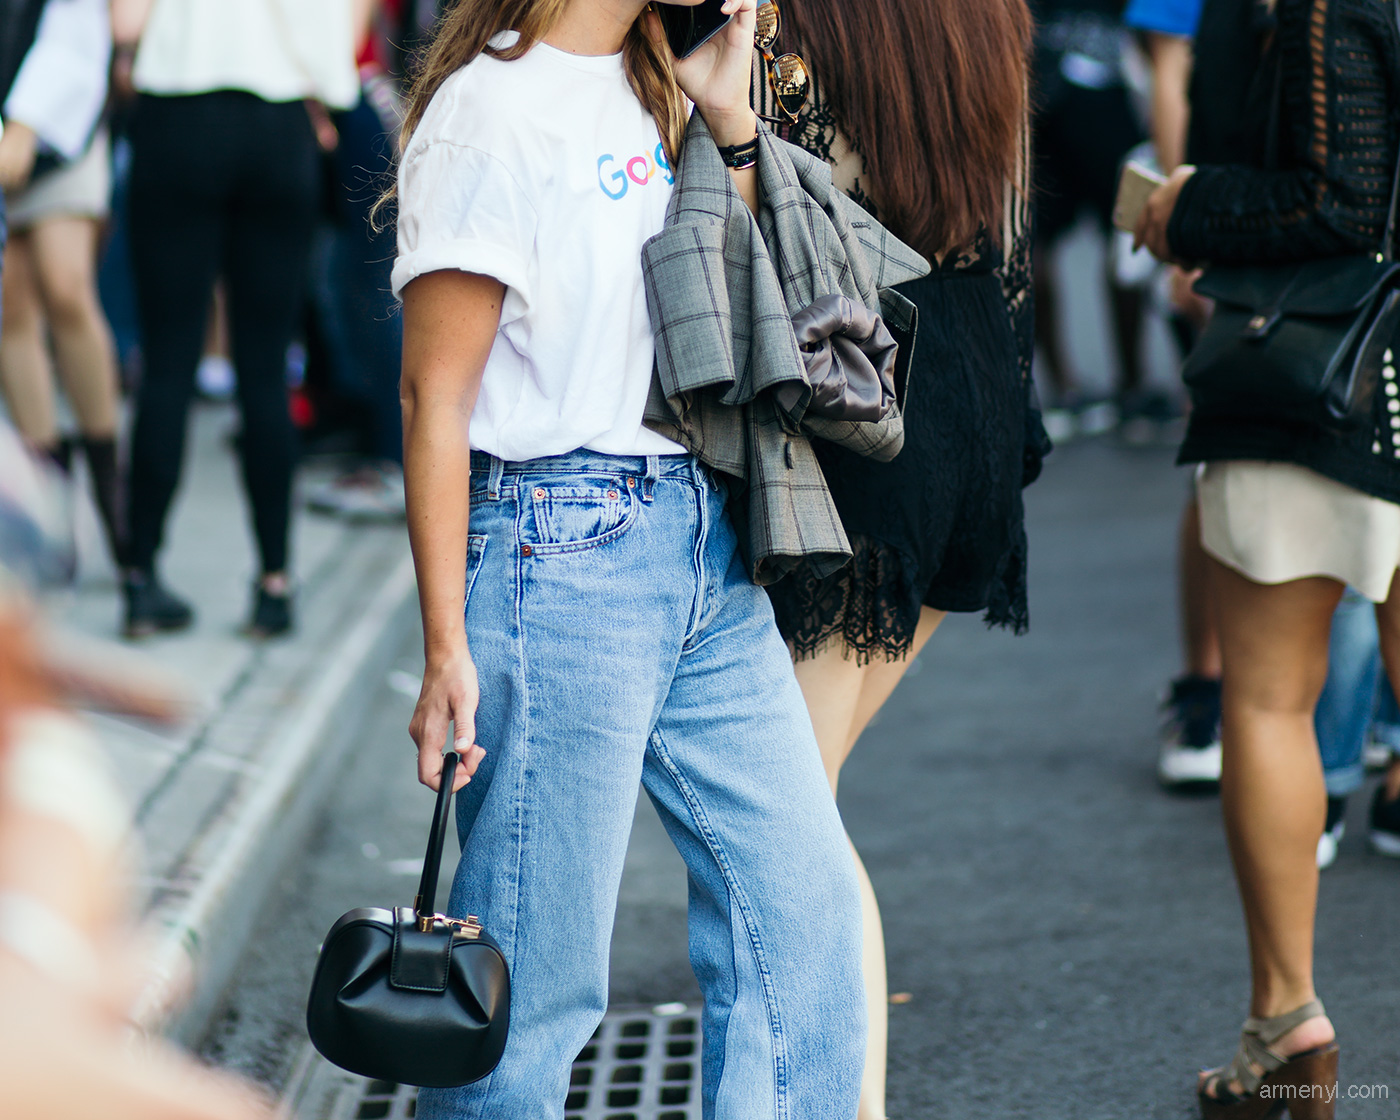 Miroslava-Duma-street-style-basic-graphic-tee-and-flared-jeans-by-street-style-photo-by-Armenyl-photography.jpg